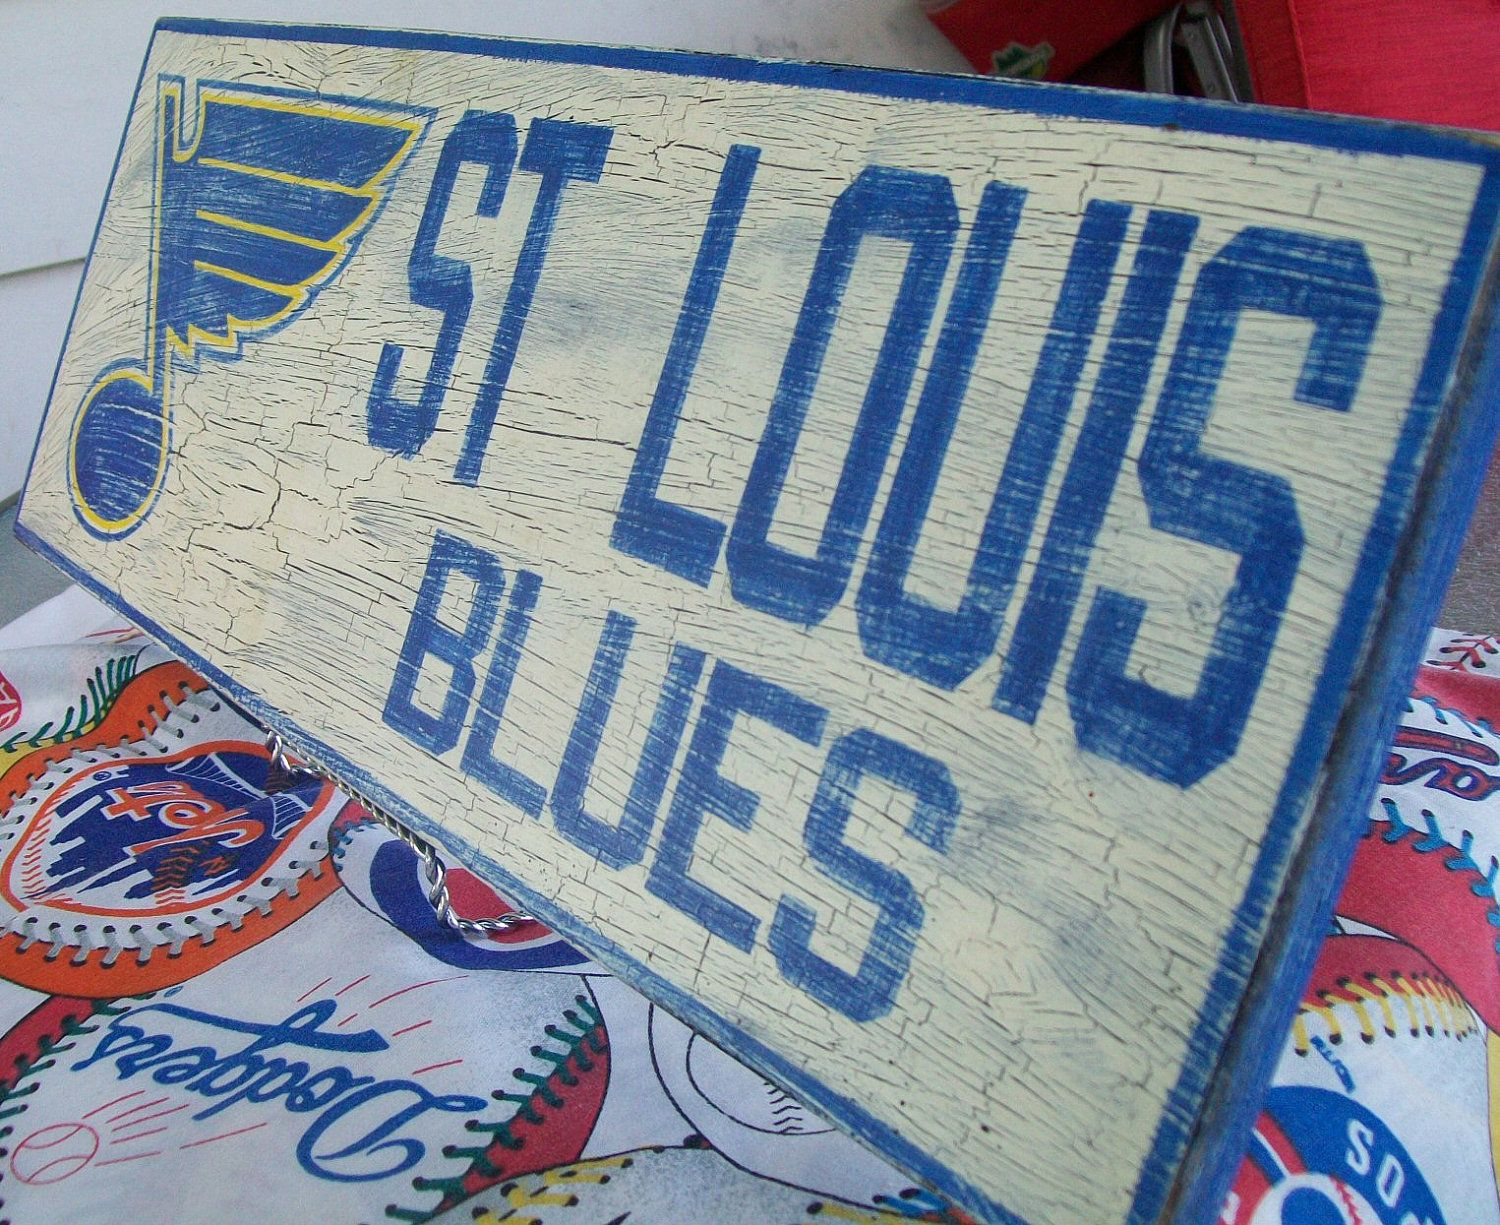 St Louis Blues Wall Sign Distressed 25 00 Via Etsy